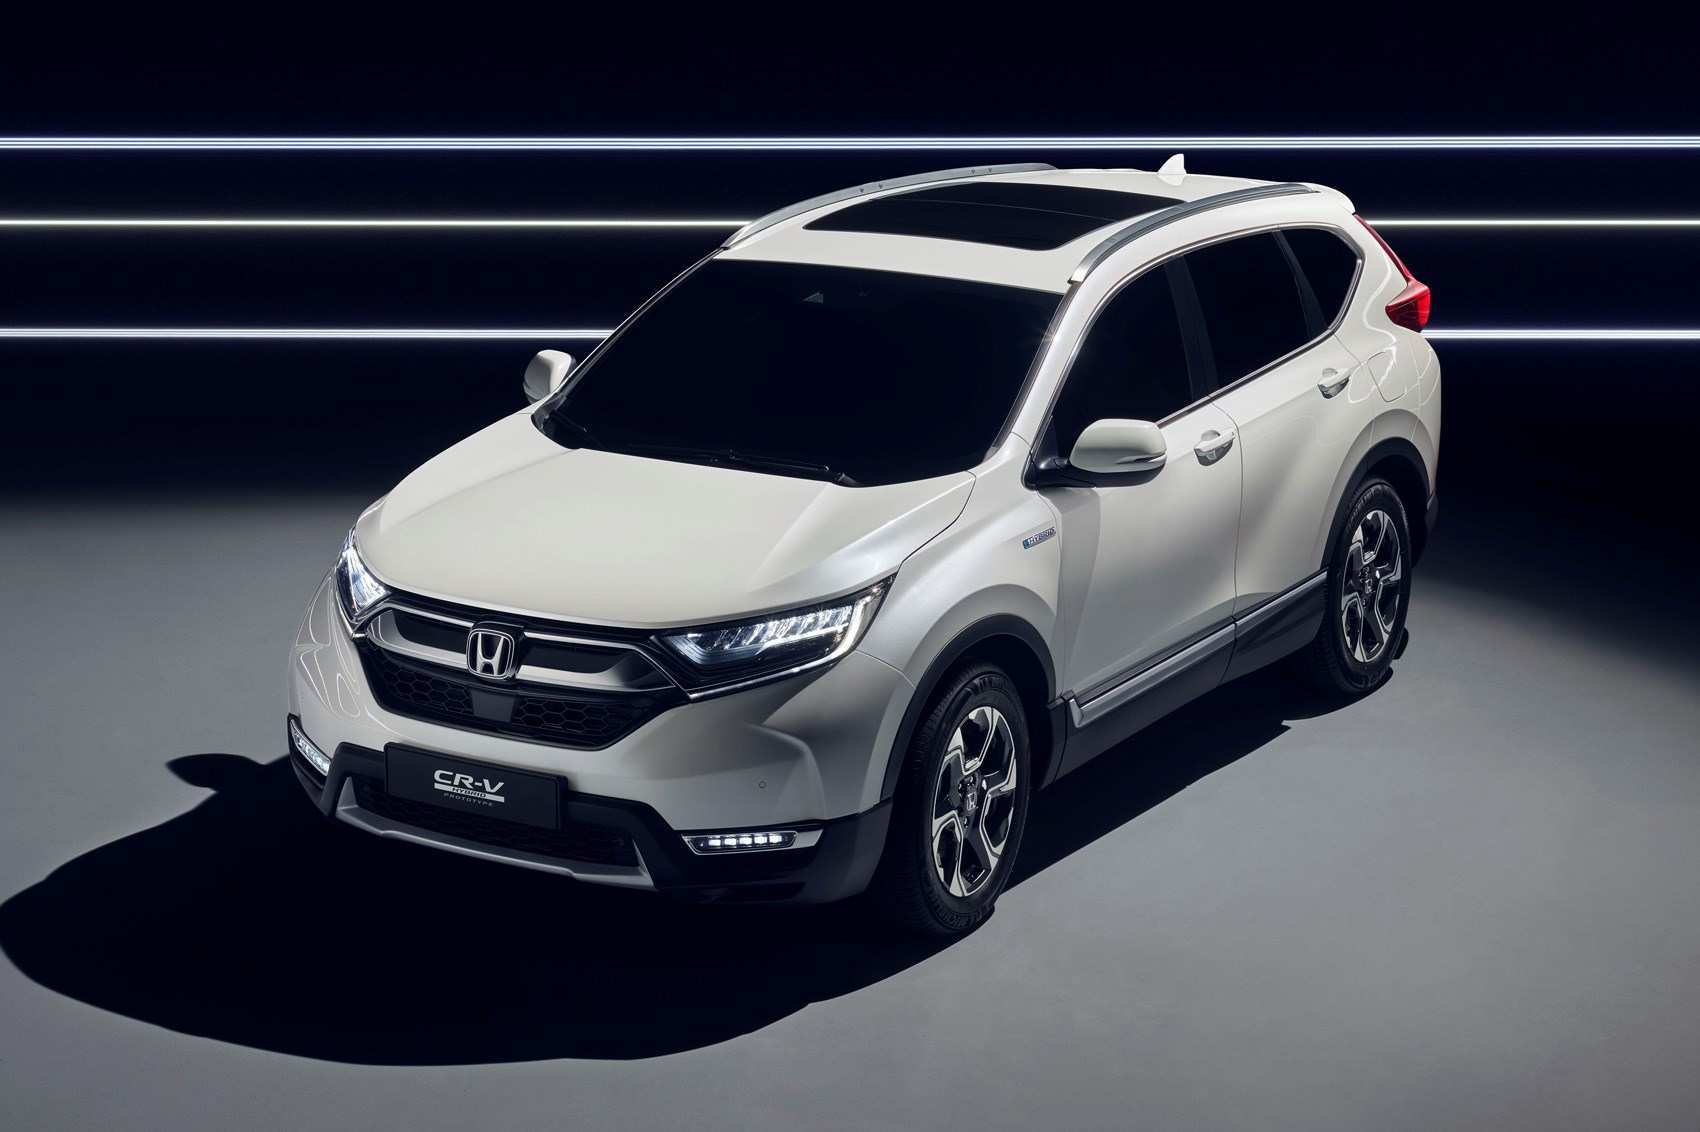 58 Gallery of Honda Hrv 2020 Colors Rumors with Honda Hrv 2020 Colors